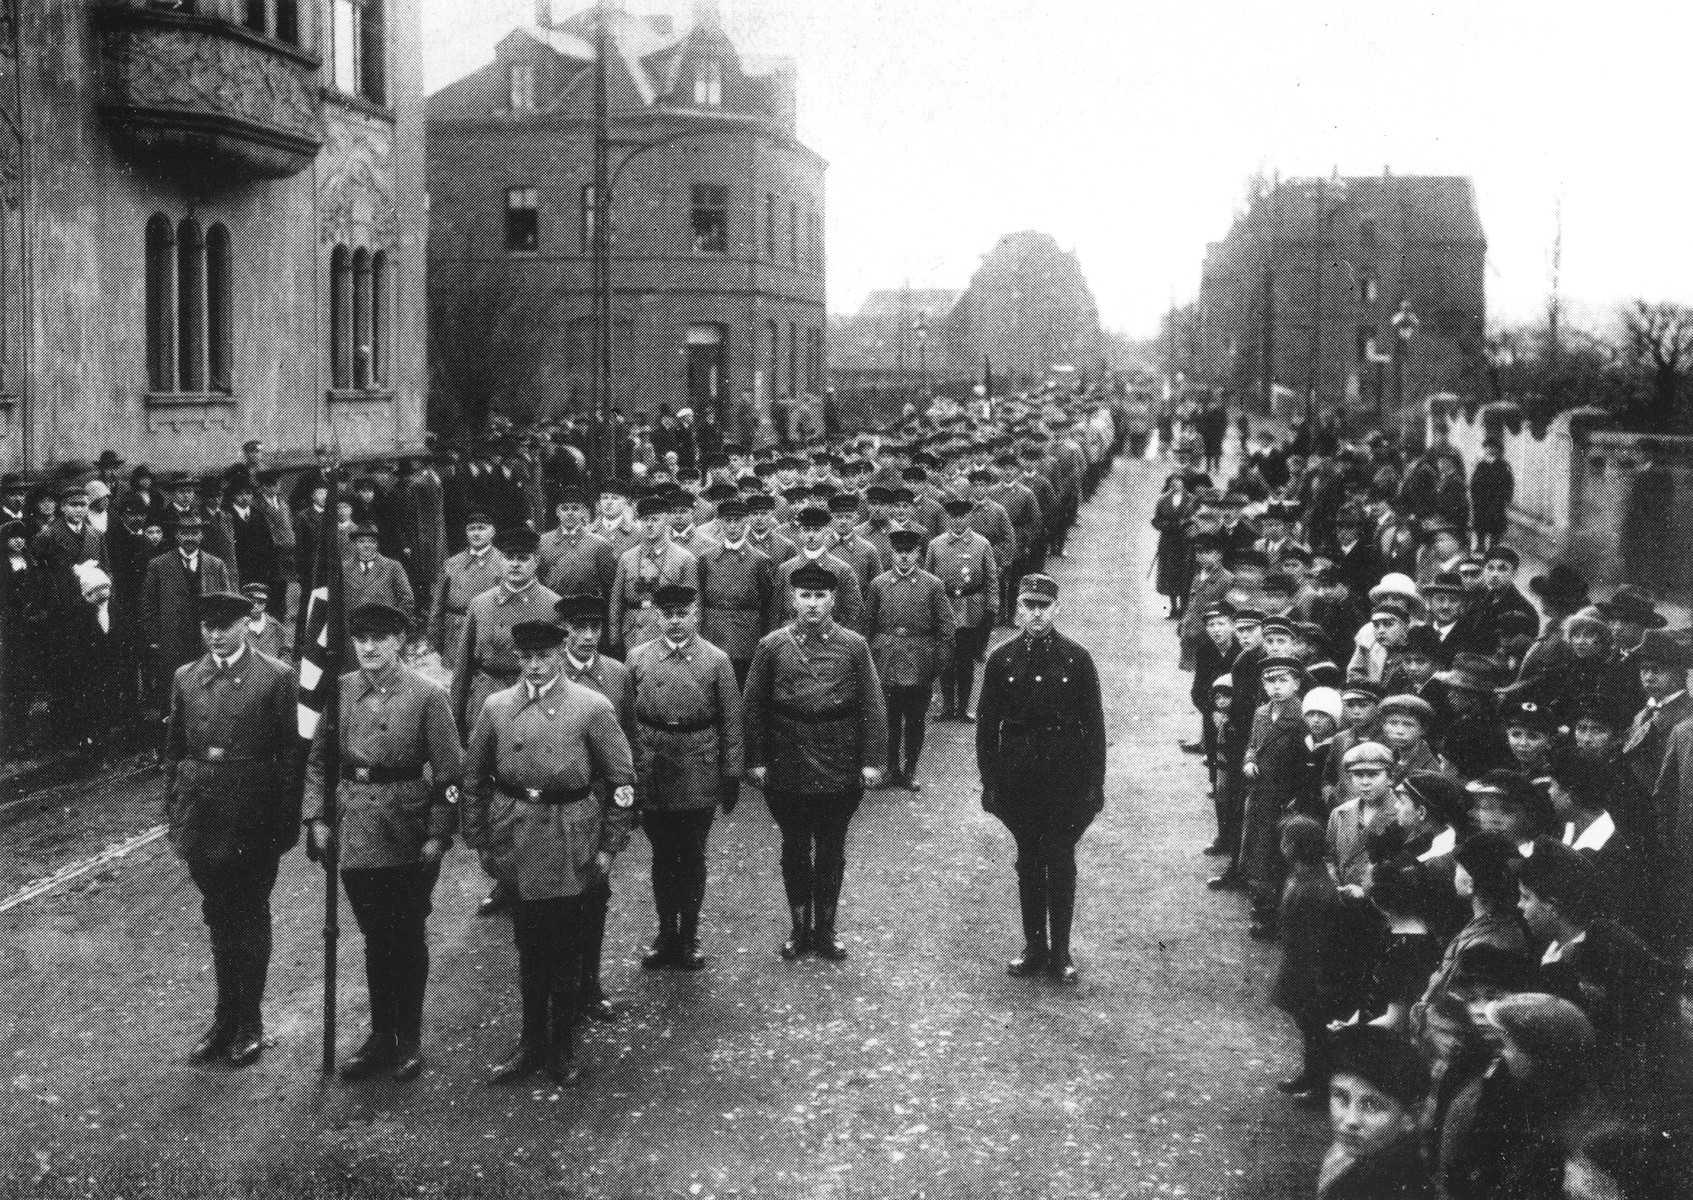 Local residents line the streets during an SA march in an unidentified German town.